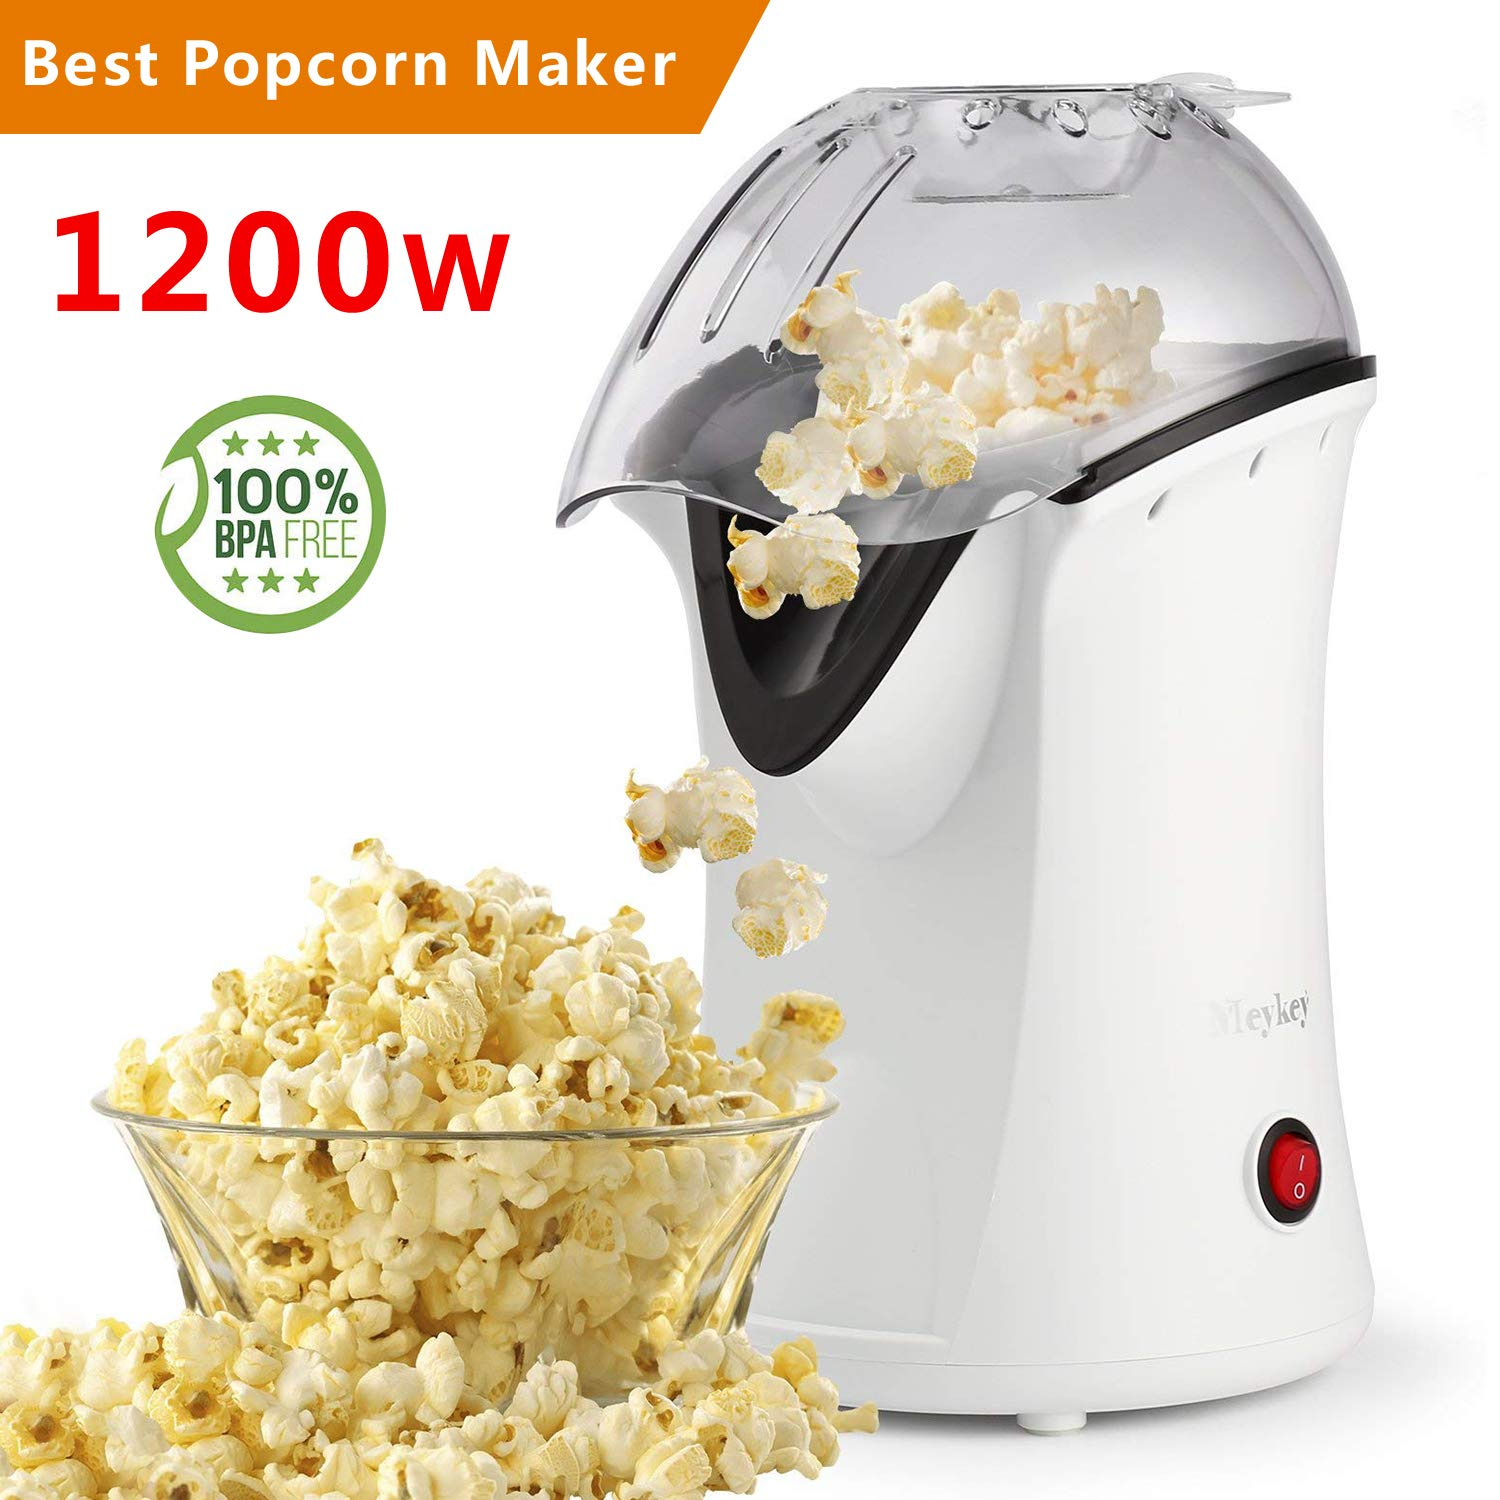 Popcorn Maker, Popcorn Machine, 1200W Hot Air Popcorn Popper Healthy Machine No Oil Needed MeyKey